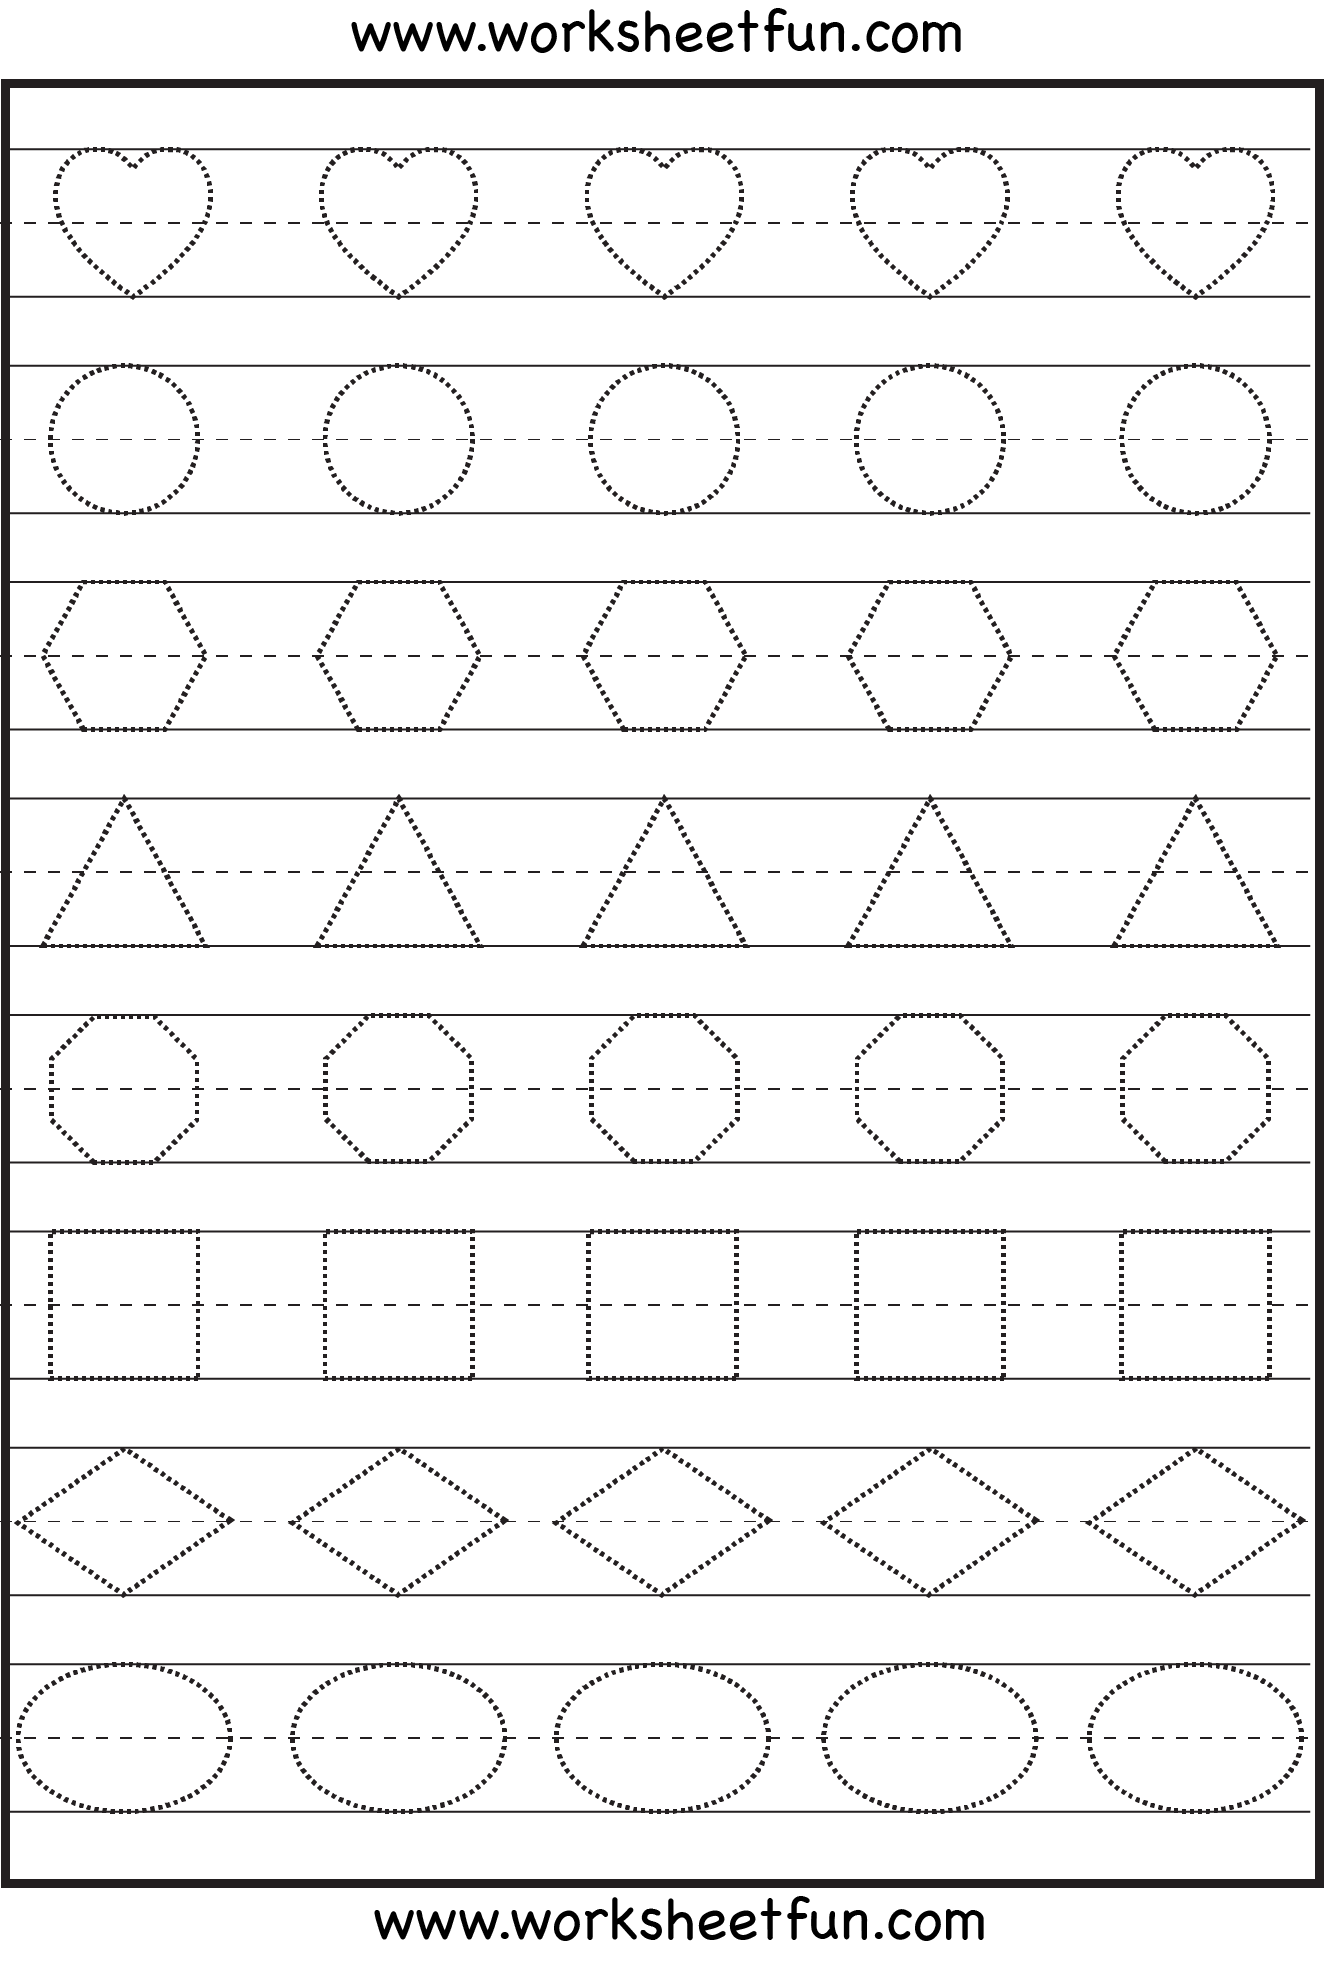 Worksheets Free Printable Worksheets For Pre-k Students shape tracing letters more lots of preschool practice sheets printable worksheetsworksheets